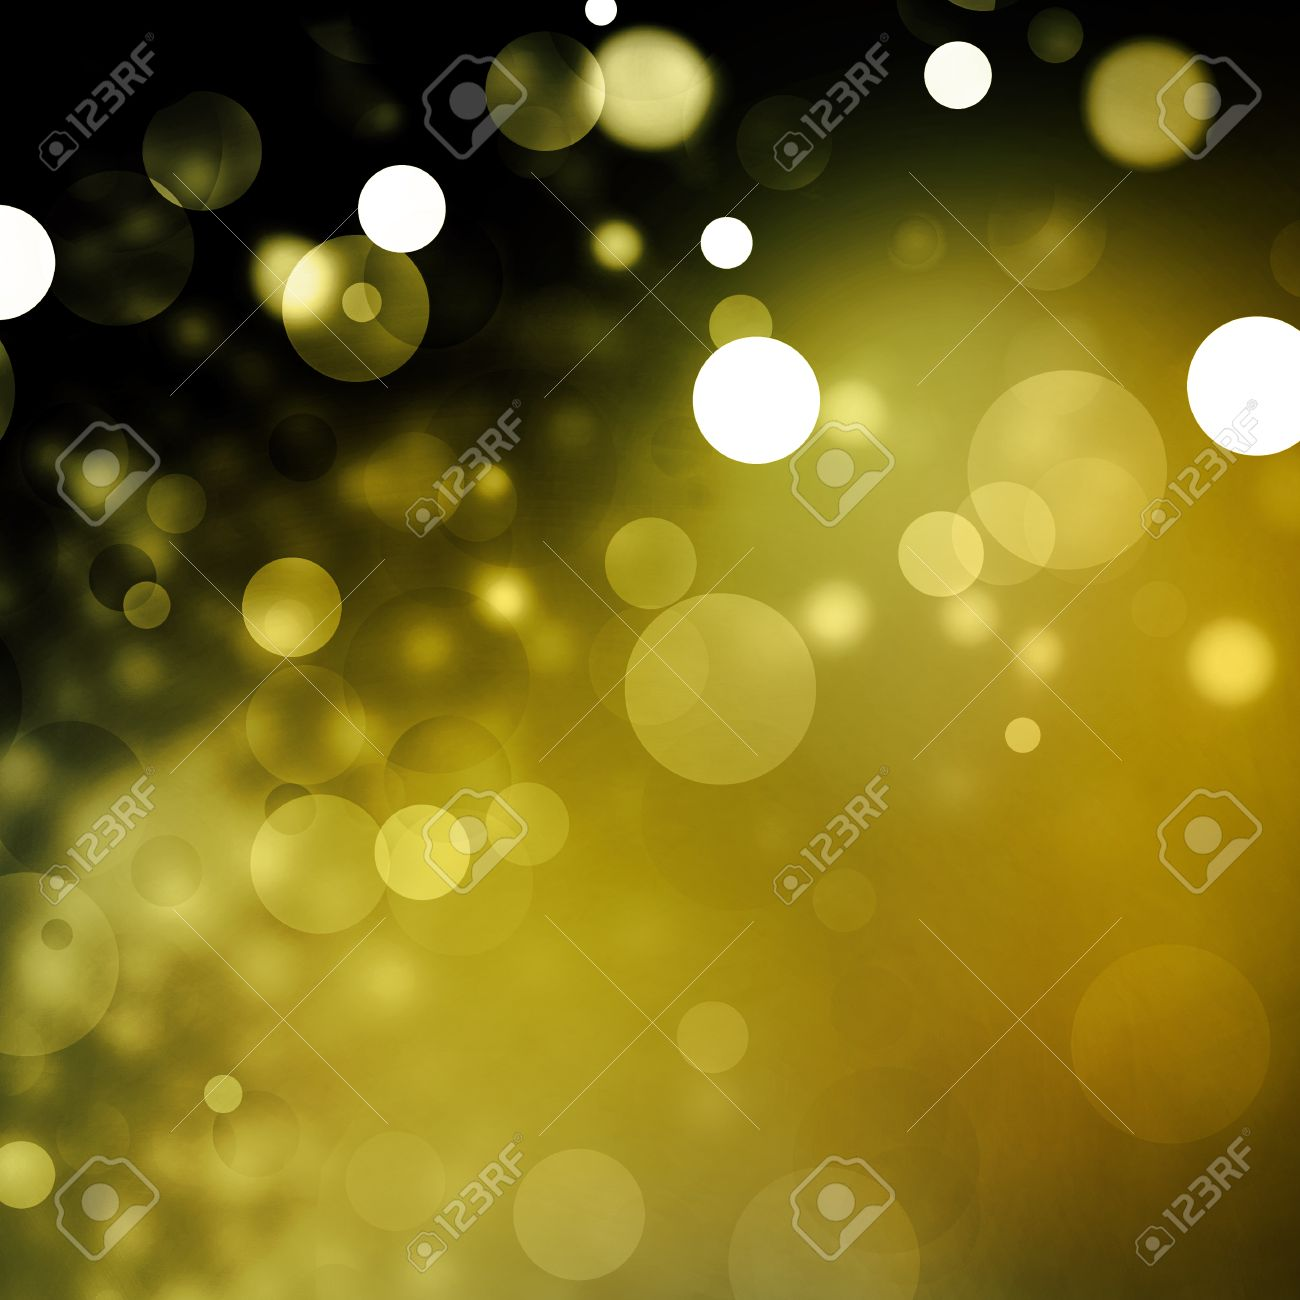 Beautiful gold bokeh background with black border and shimmering white Christmas lights or abstract falling snow  Festive party background  Fantasy night or magical background glitter sparkles Stock Photo - 28140419